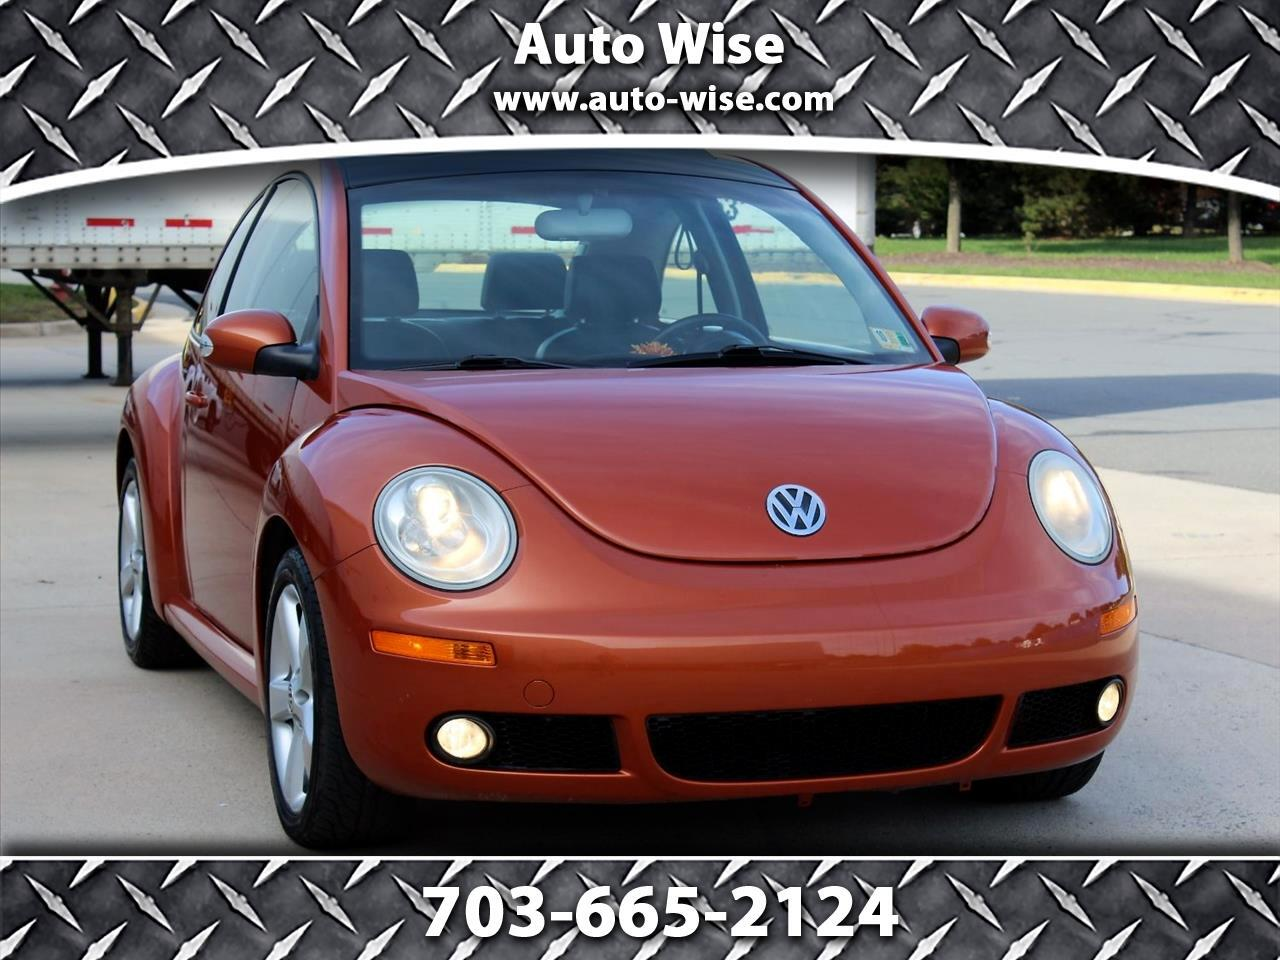 2010 Volkswagen New Beetle Coupe 2dr Red Rock Edition